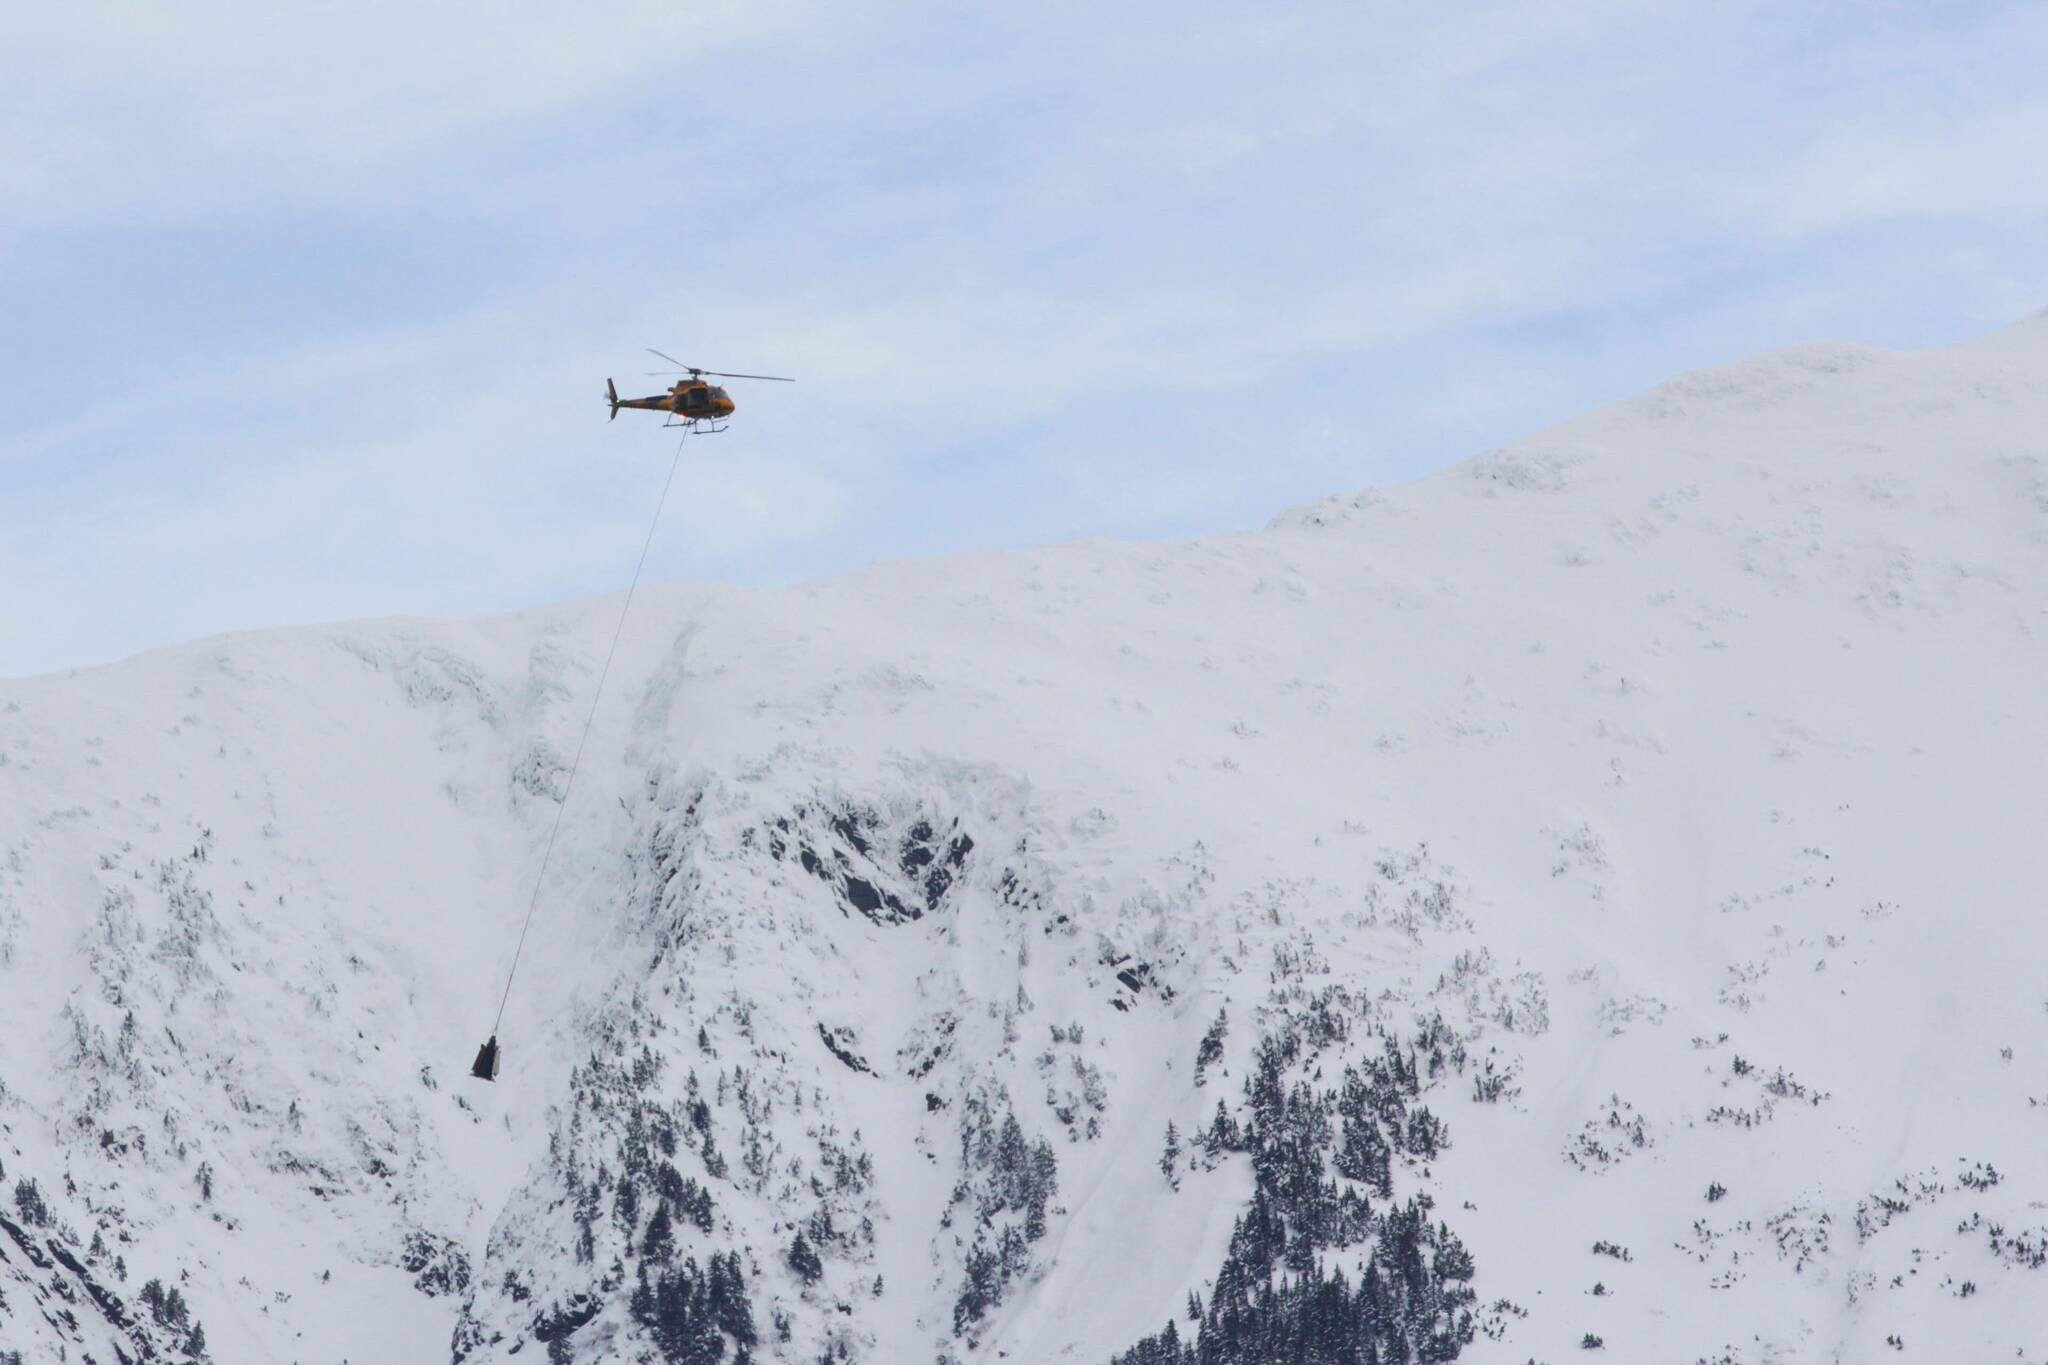 The Alaska Department of Transportation and Public Facilities, contracting with Coastal Helicopters, works to reduce avalanche risk on Thane Road by setting off avalanches in a controlled fashion on Feb. 5, 2021. City officials are currently considering adopting new maps that designate additional avalanche and landslide areas downtown. (Michael S. Lockett / Juneau Empire File)